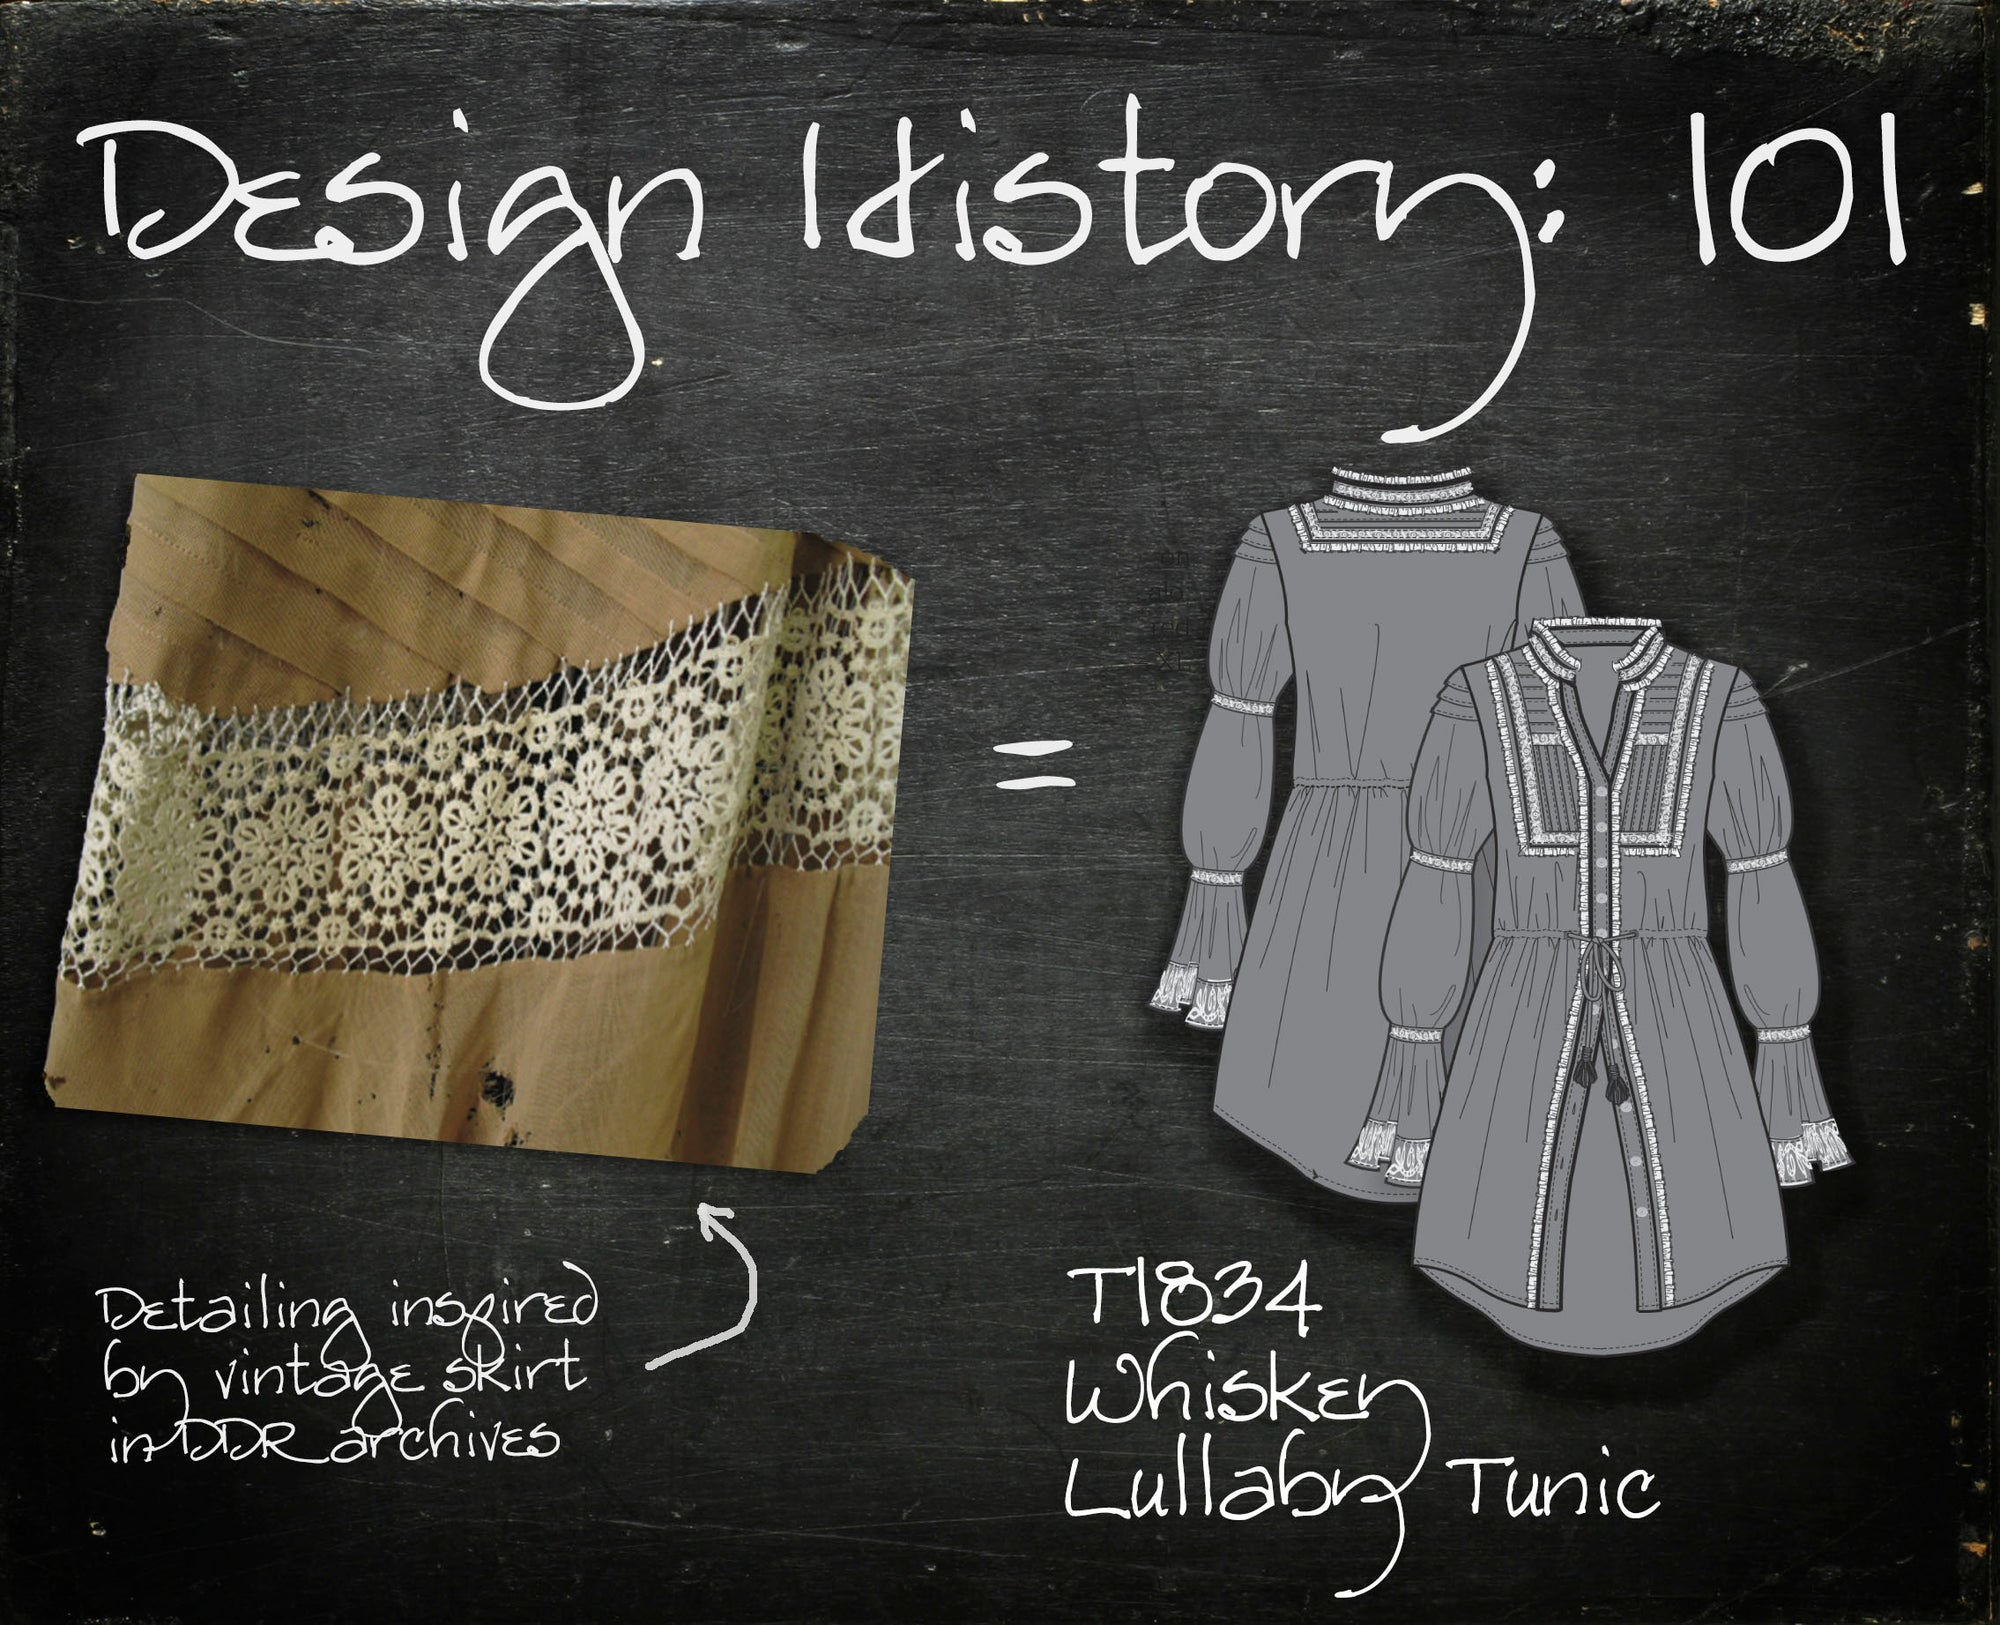 Design History 101: Whiskey Lullaby